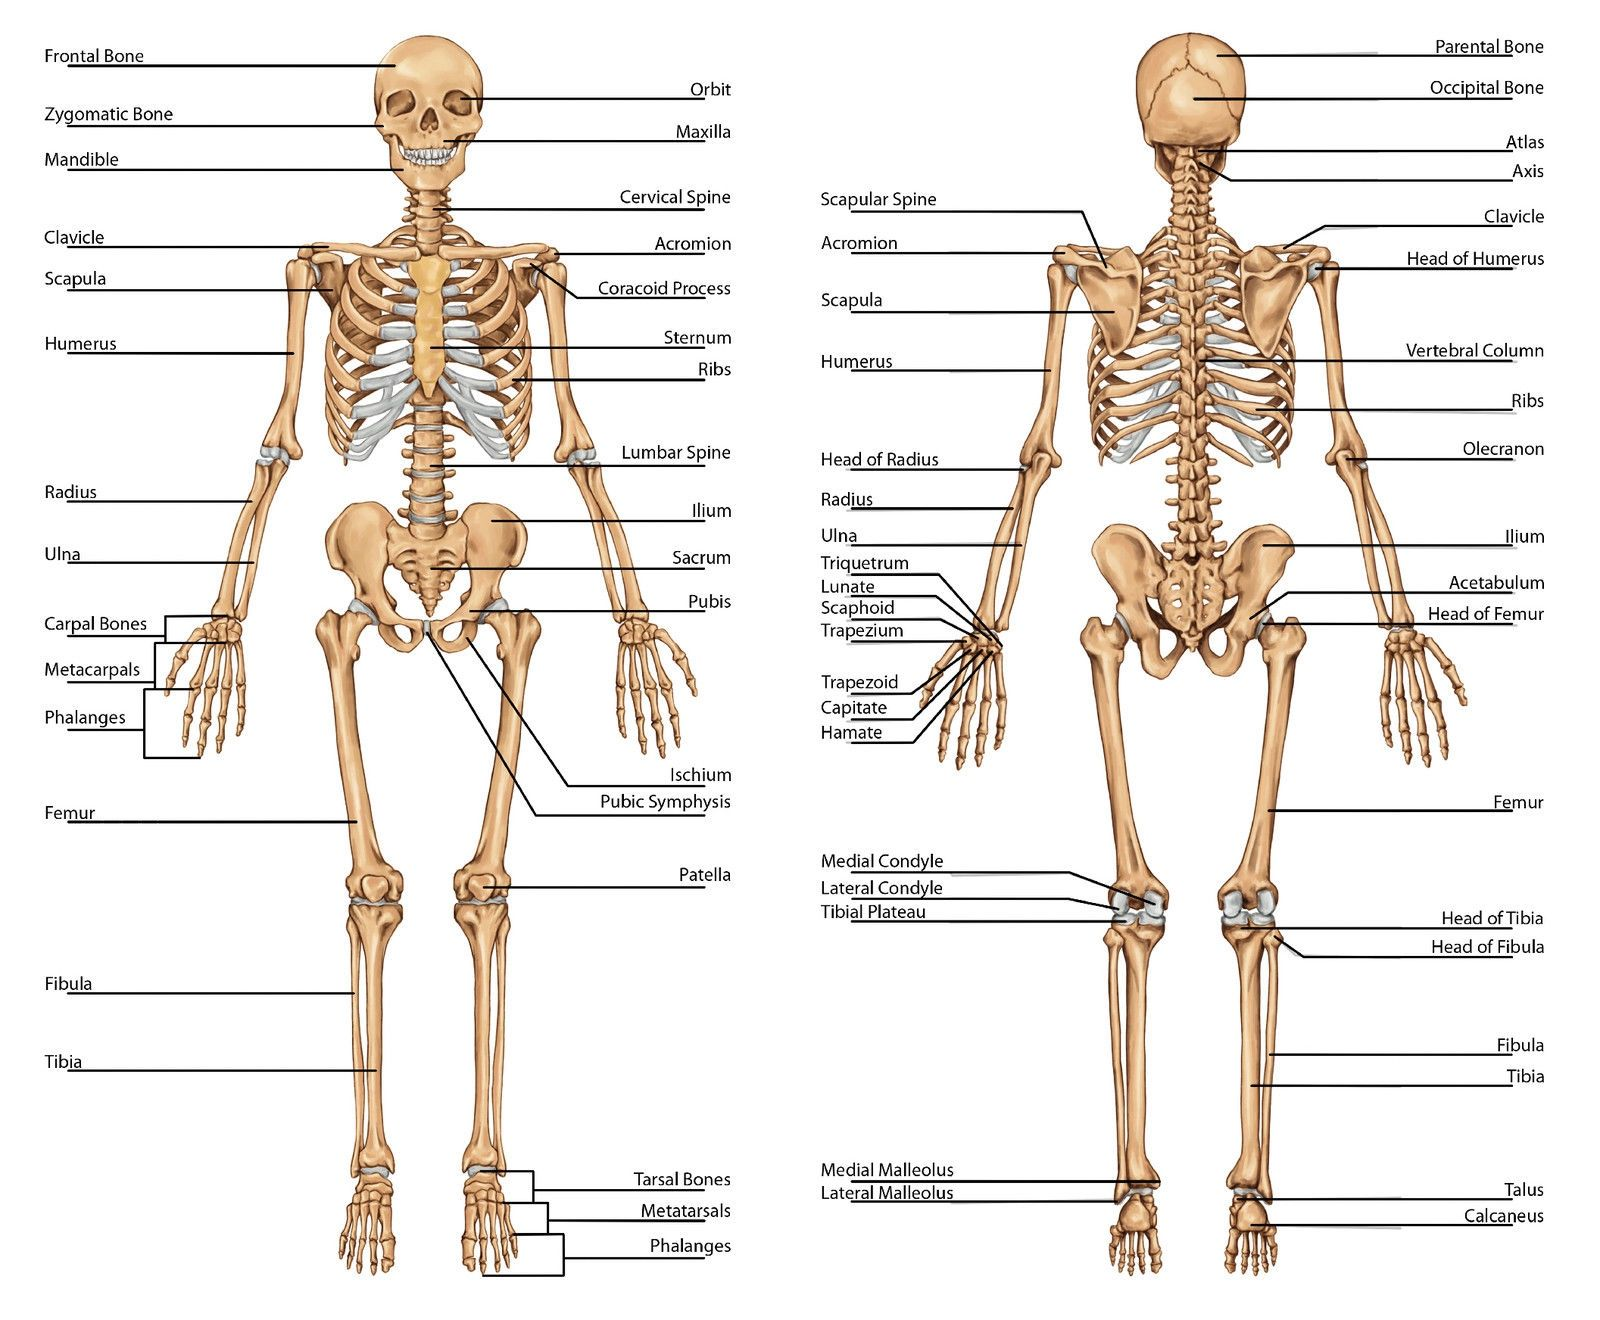 anatomy of the bones in your body skeleton bones human skeleton, Cephalic Vein